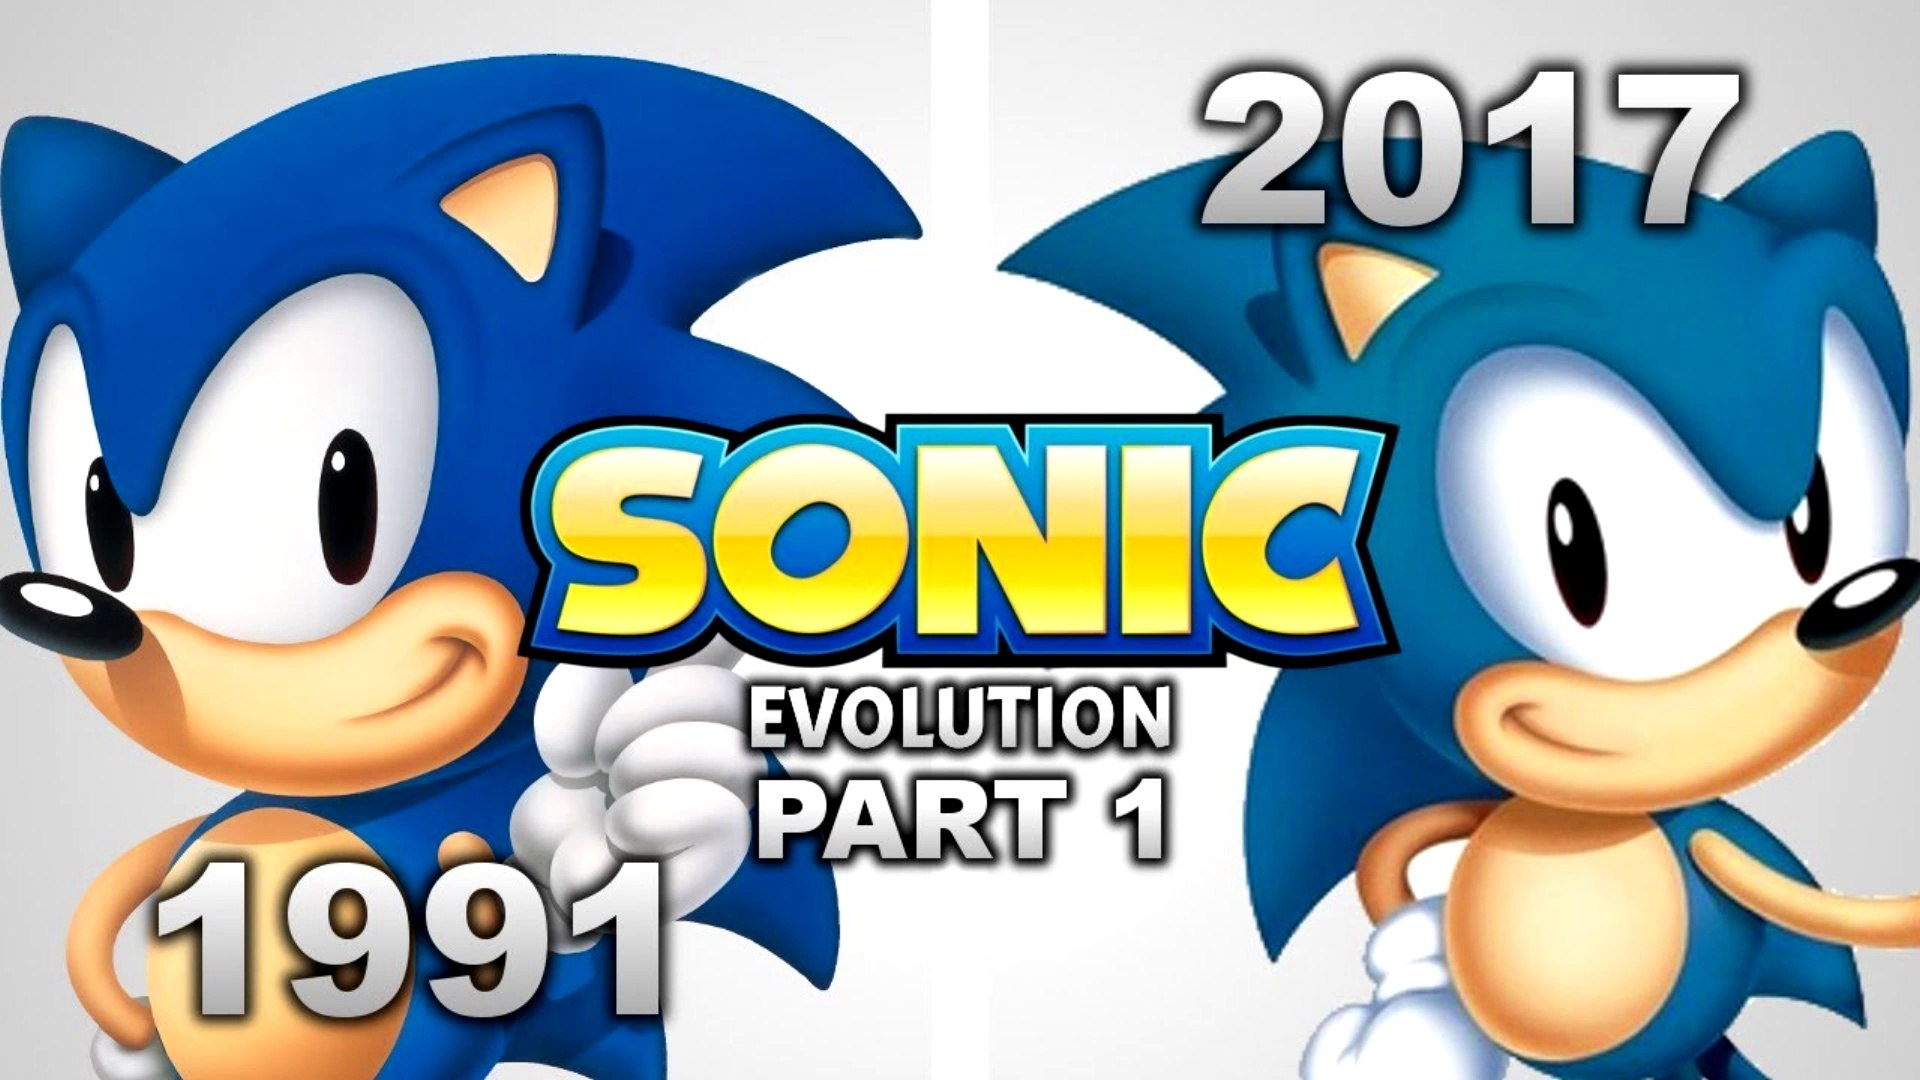 Evolution Of Sonic The Hedgehog Games Part 1 1991 1996